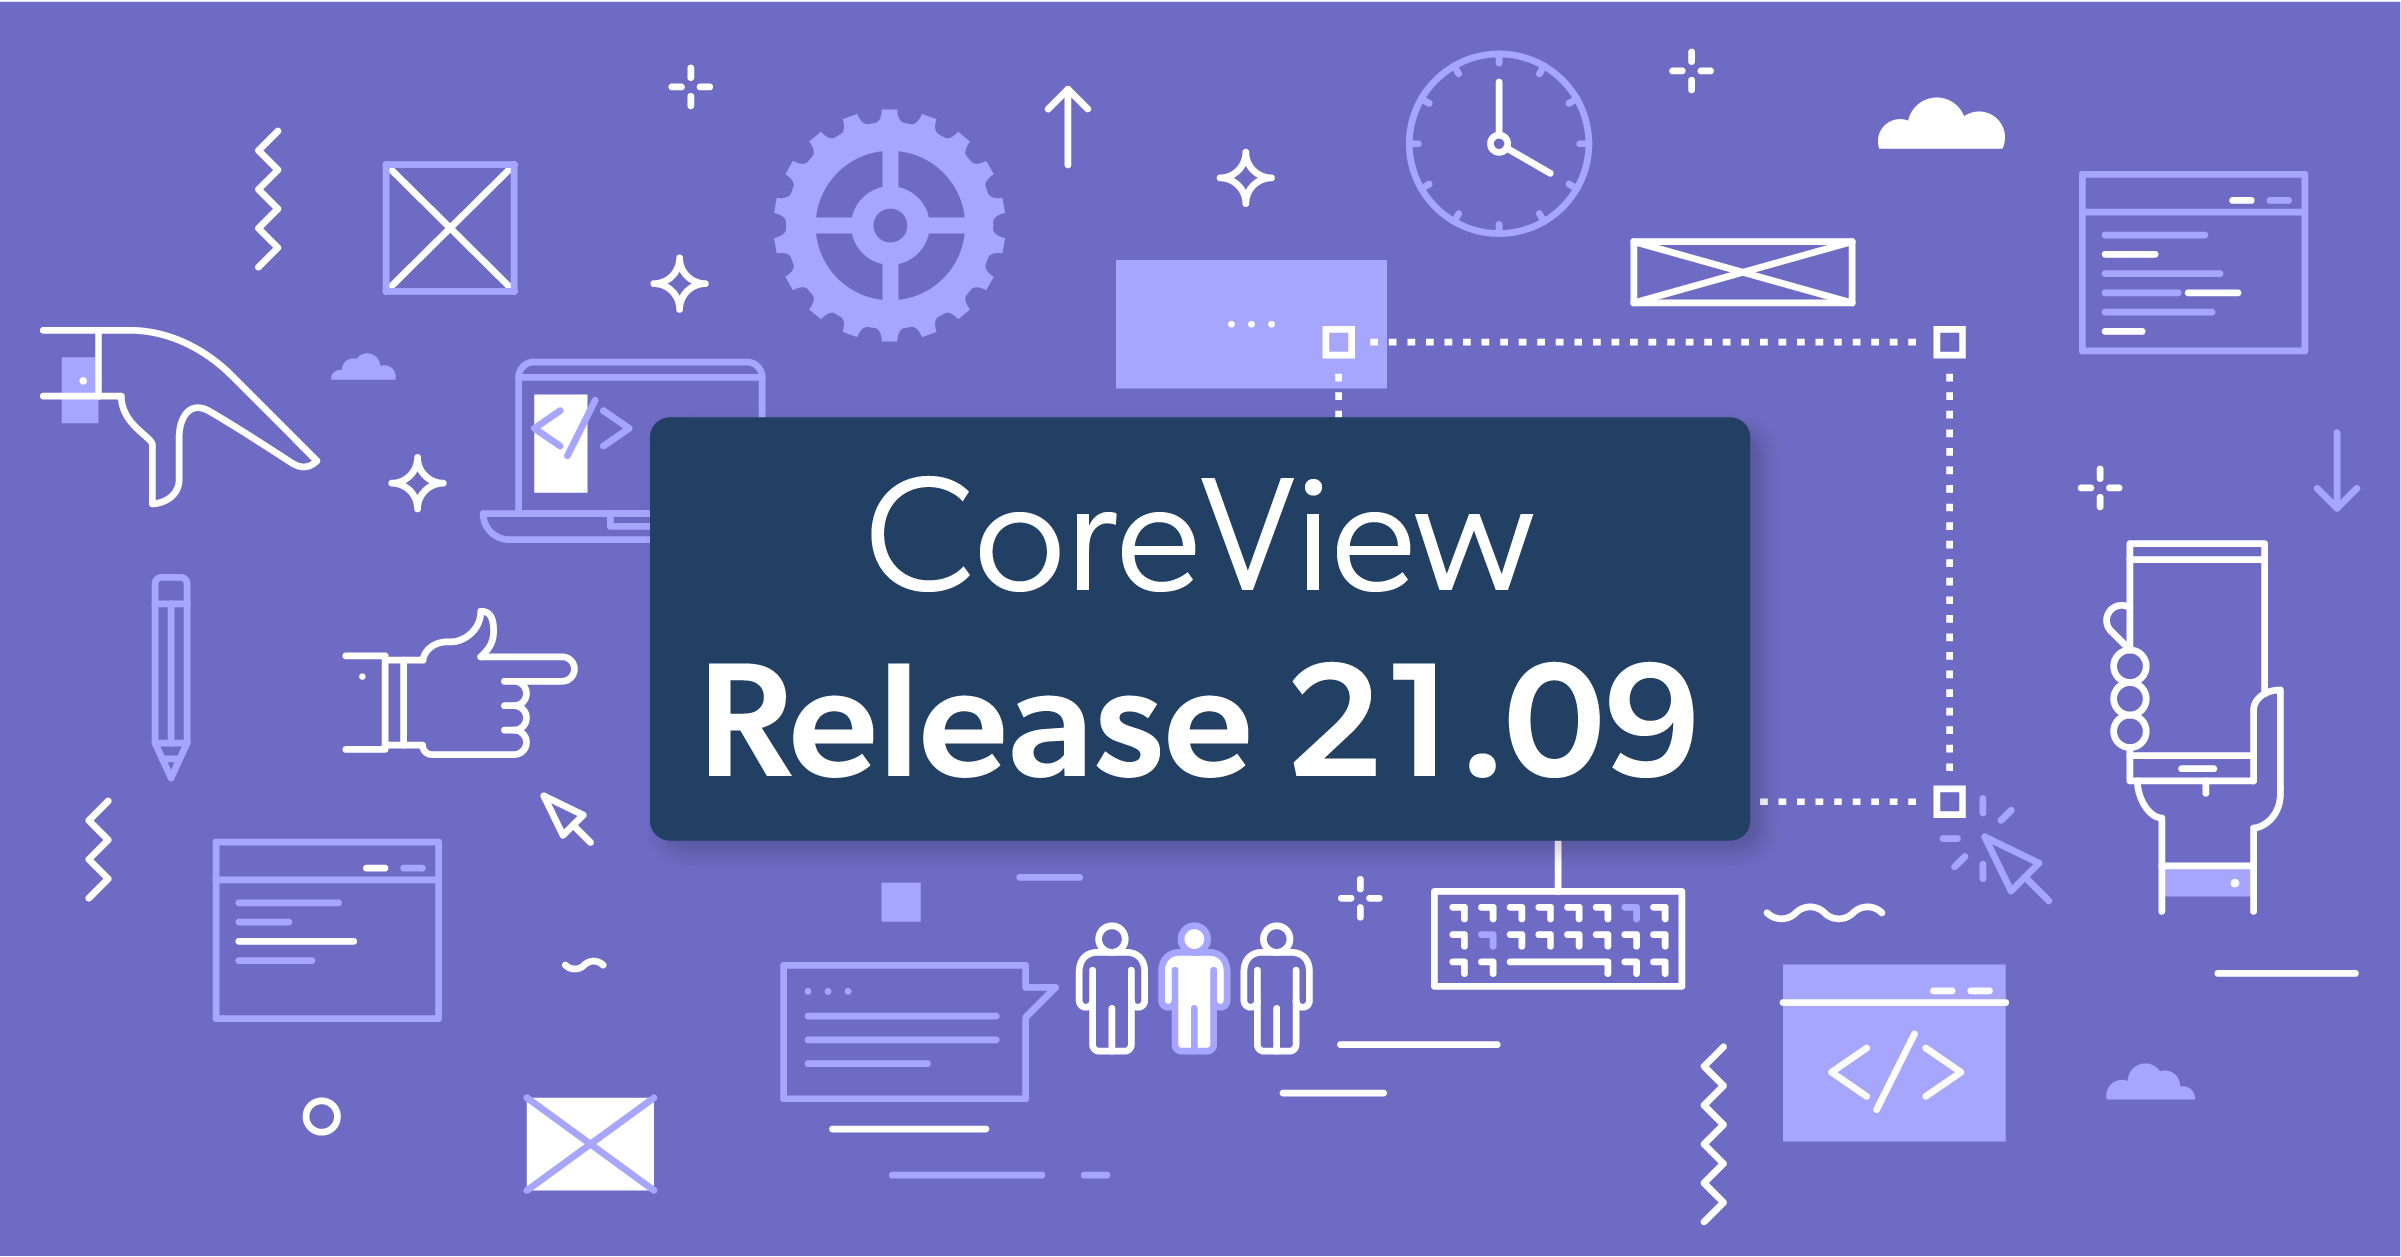 CoreView Release 21.09: User Interface Improvements, Endpoint Manager, and More Workflows